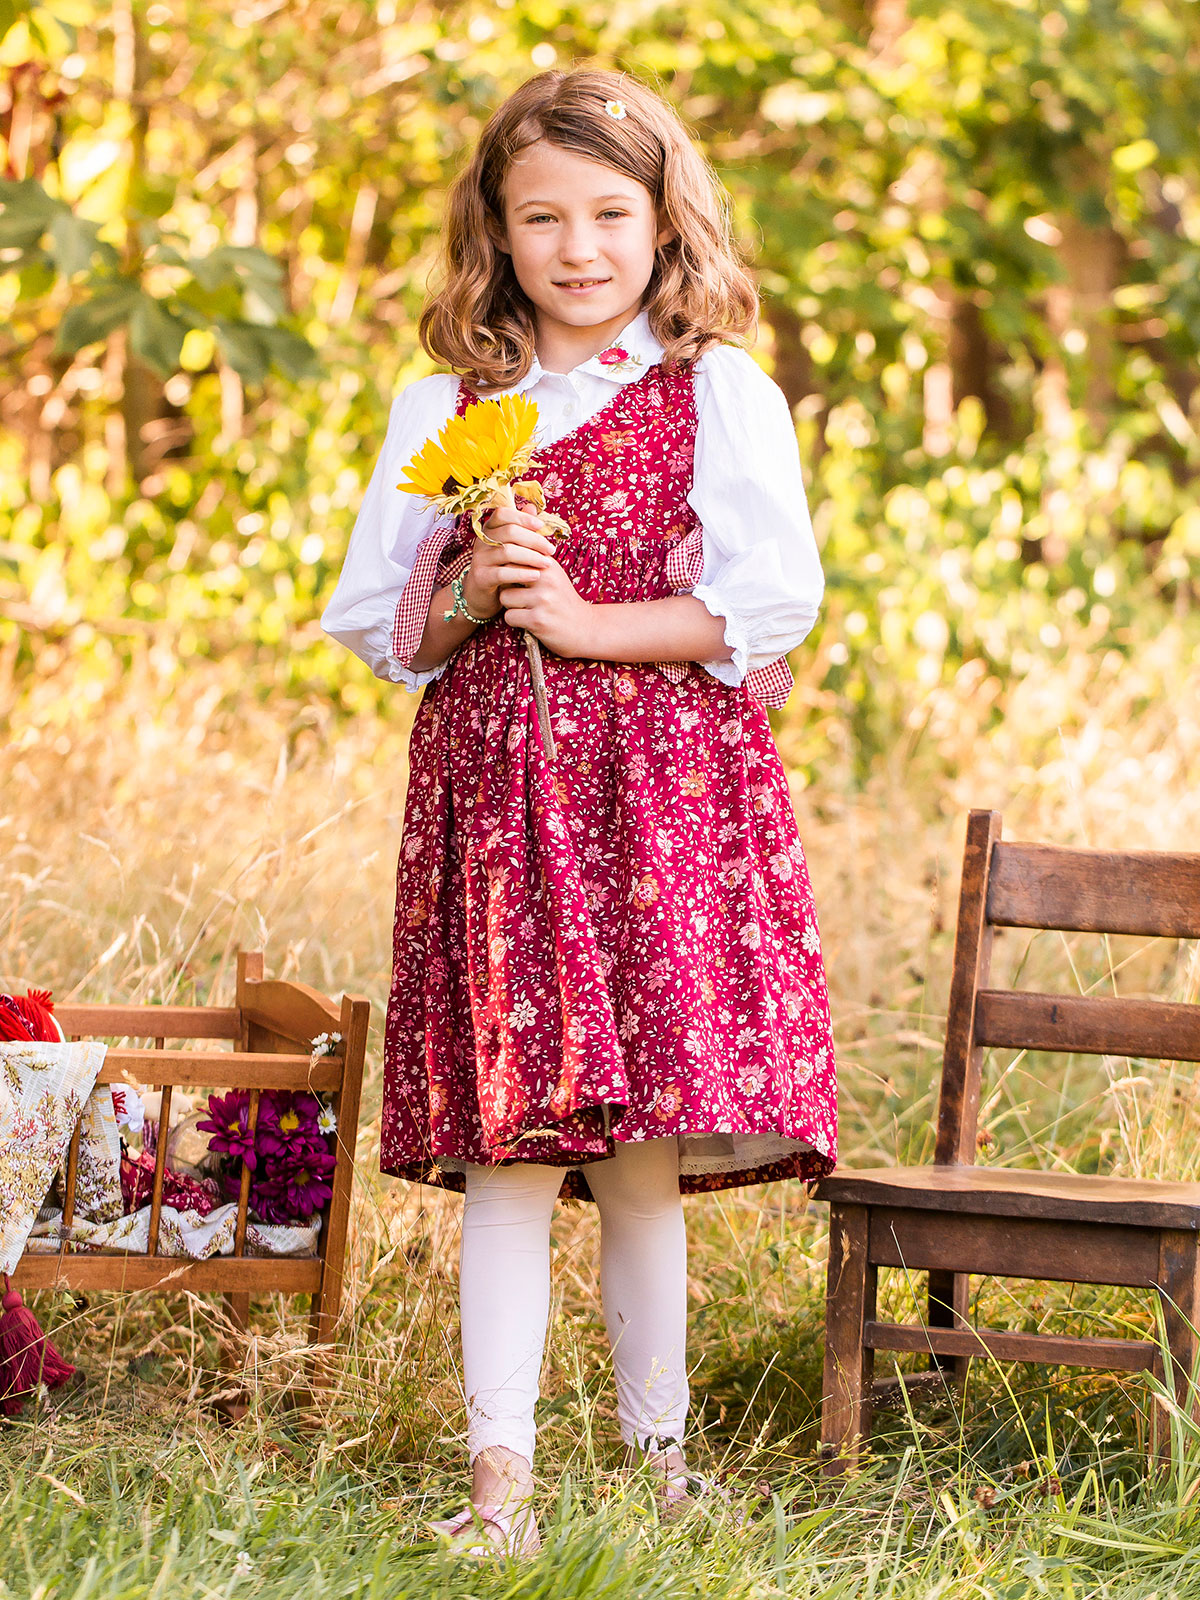 Avonlea Girls Dress